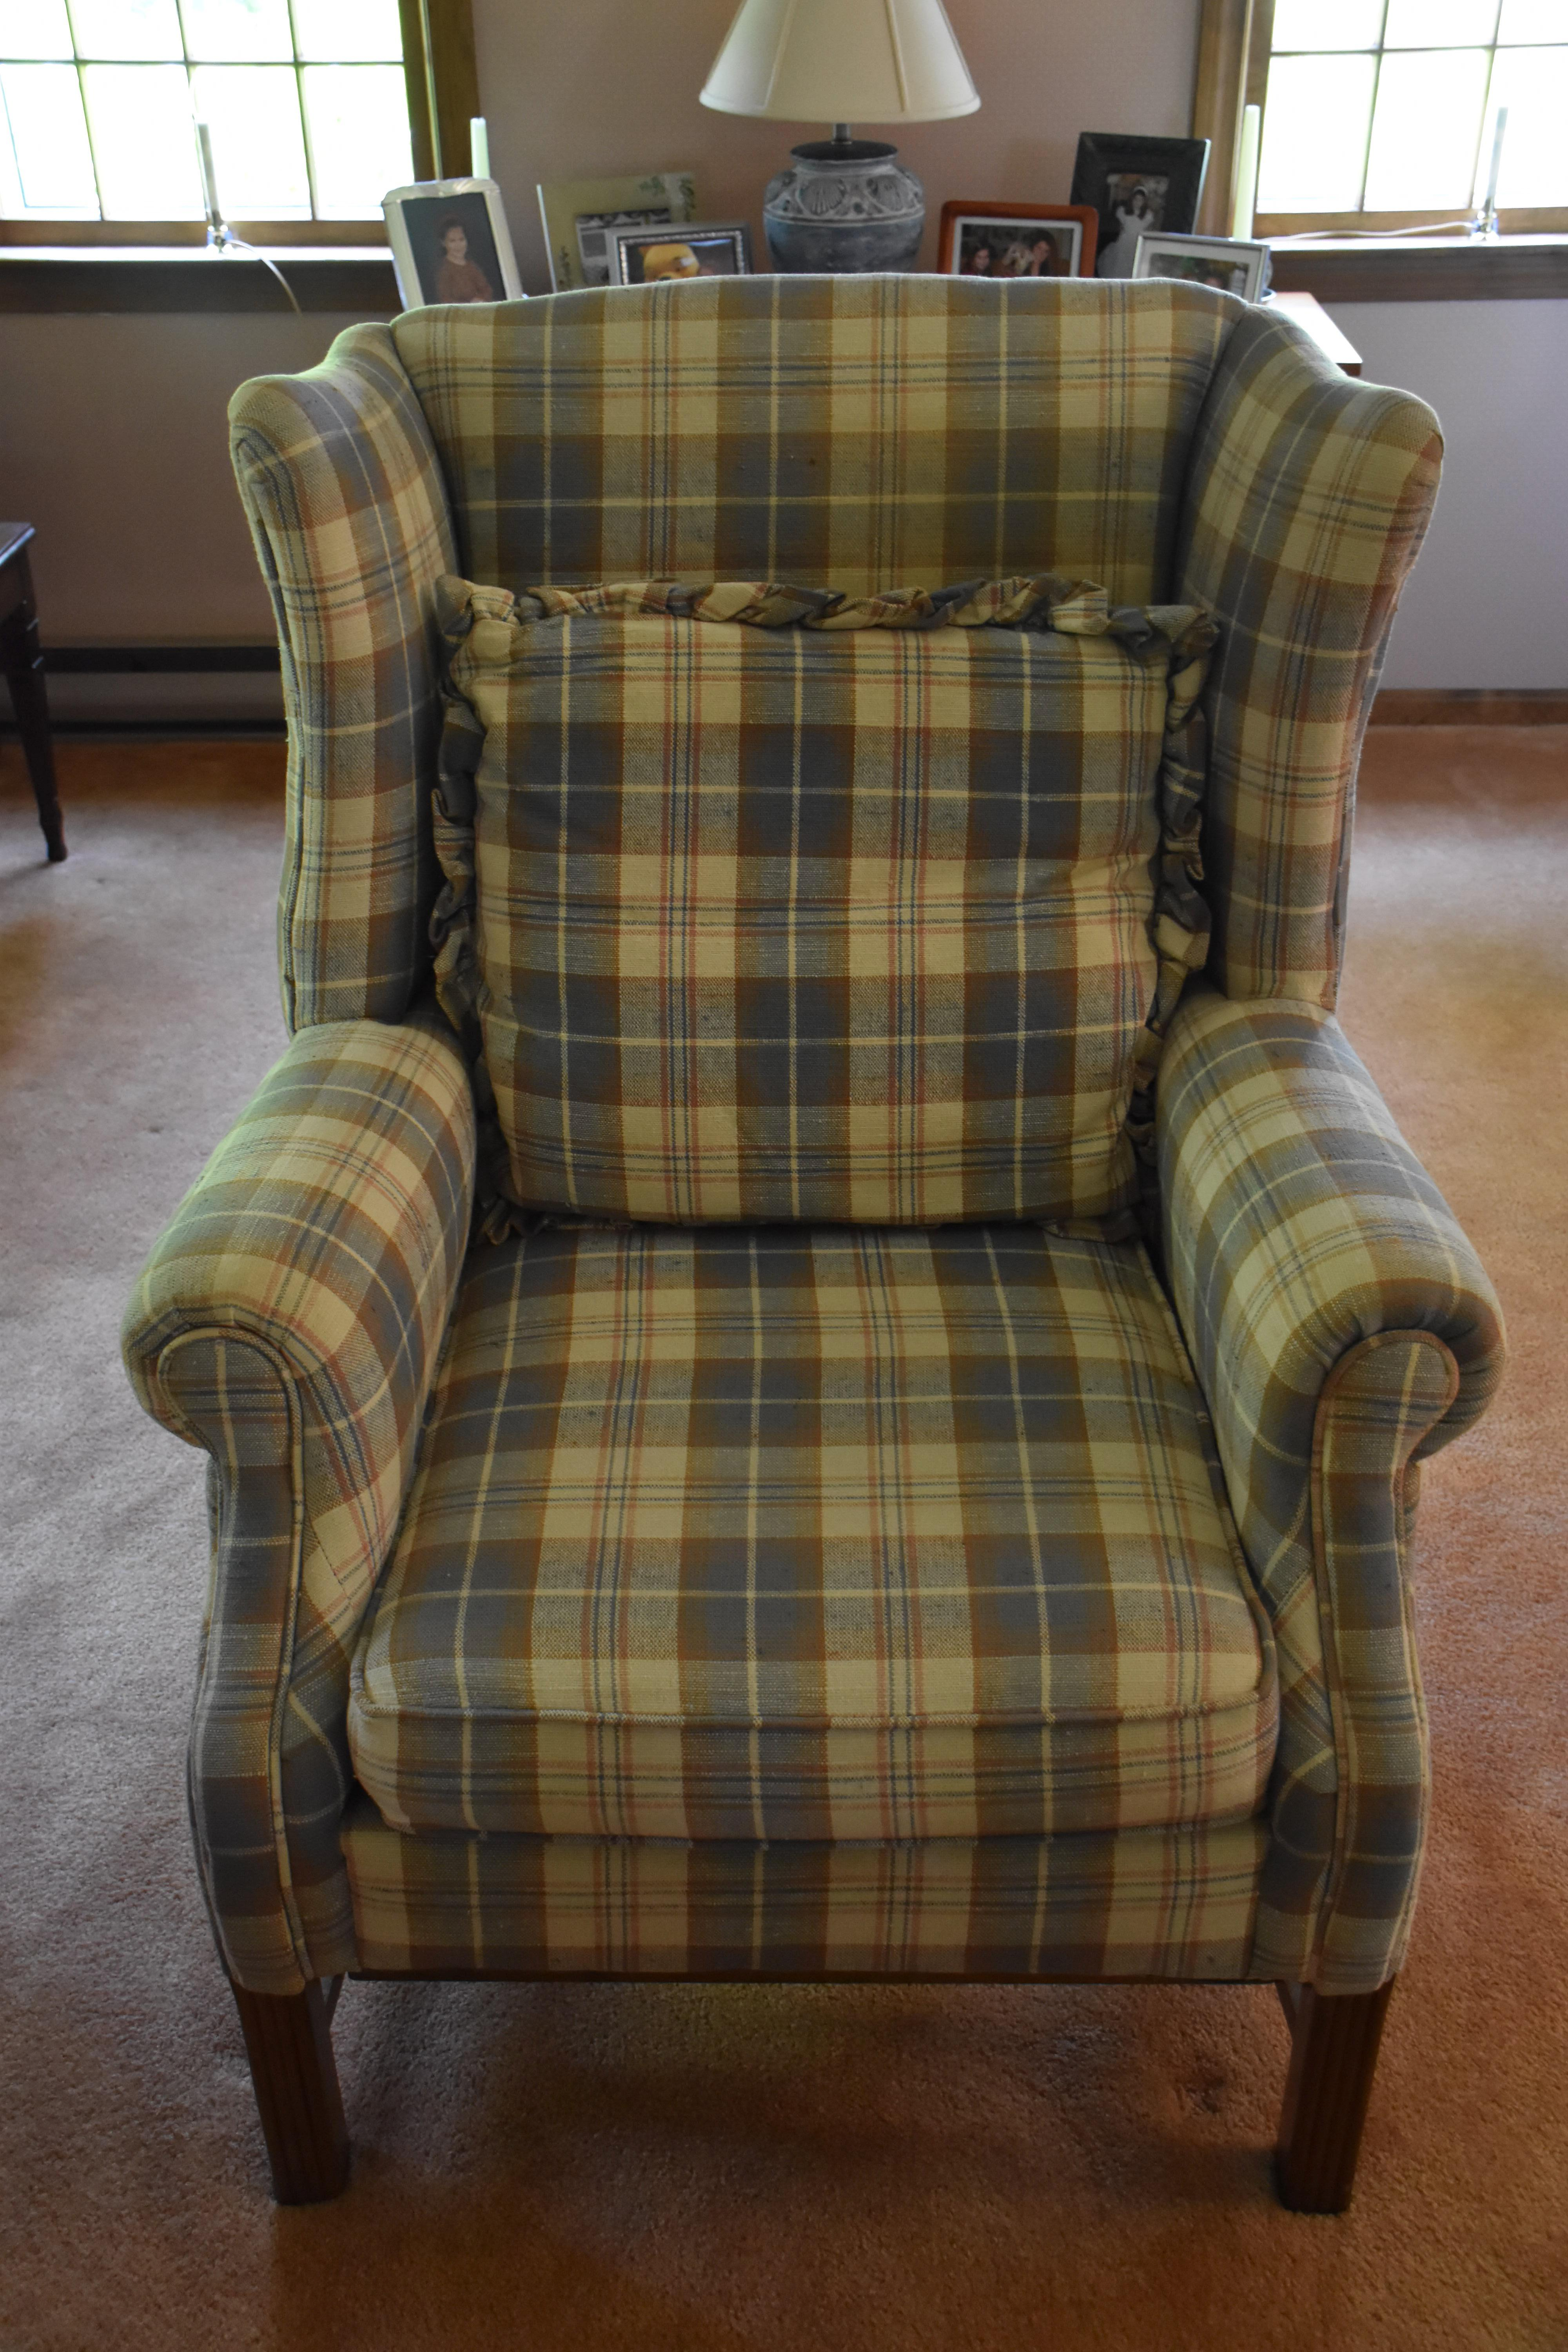 Upholstered Plaid Chair U0026 Pillow   Image 2 ...